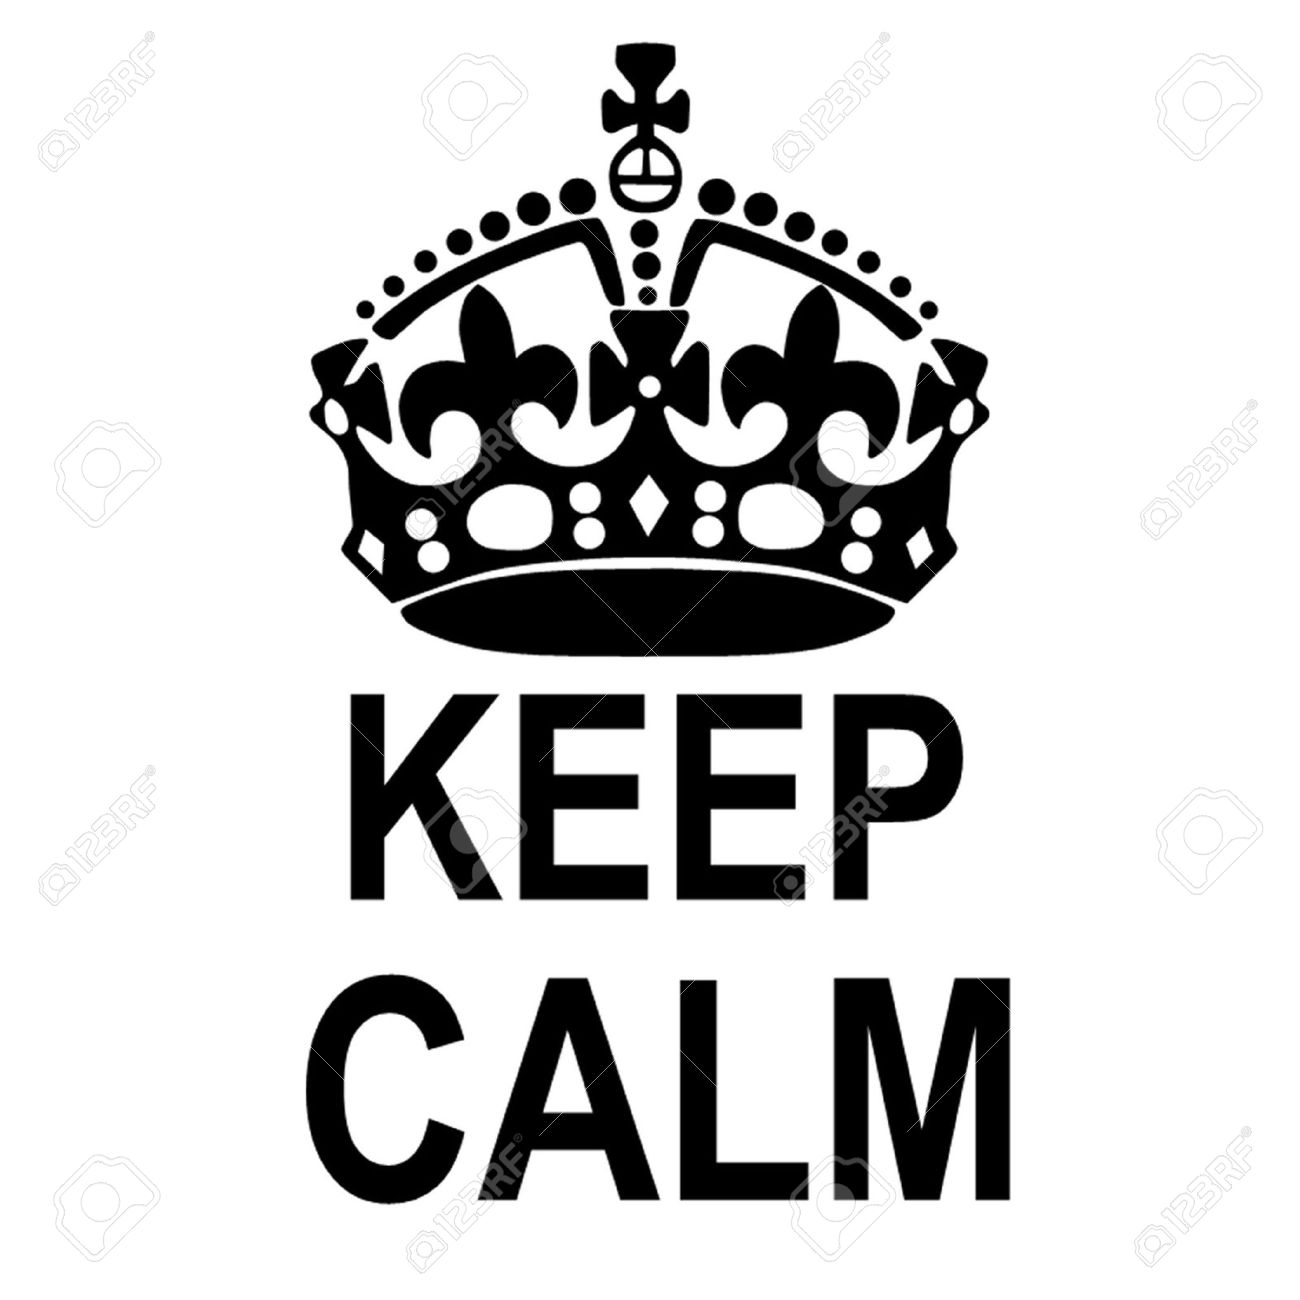 keep calm crown royalty free cliparts vectors and stock rh 123rf com keep calm crown vector ai keep calm crown vector ai